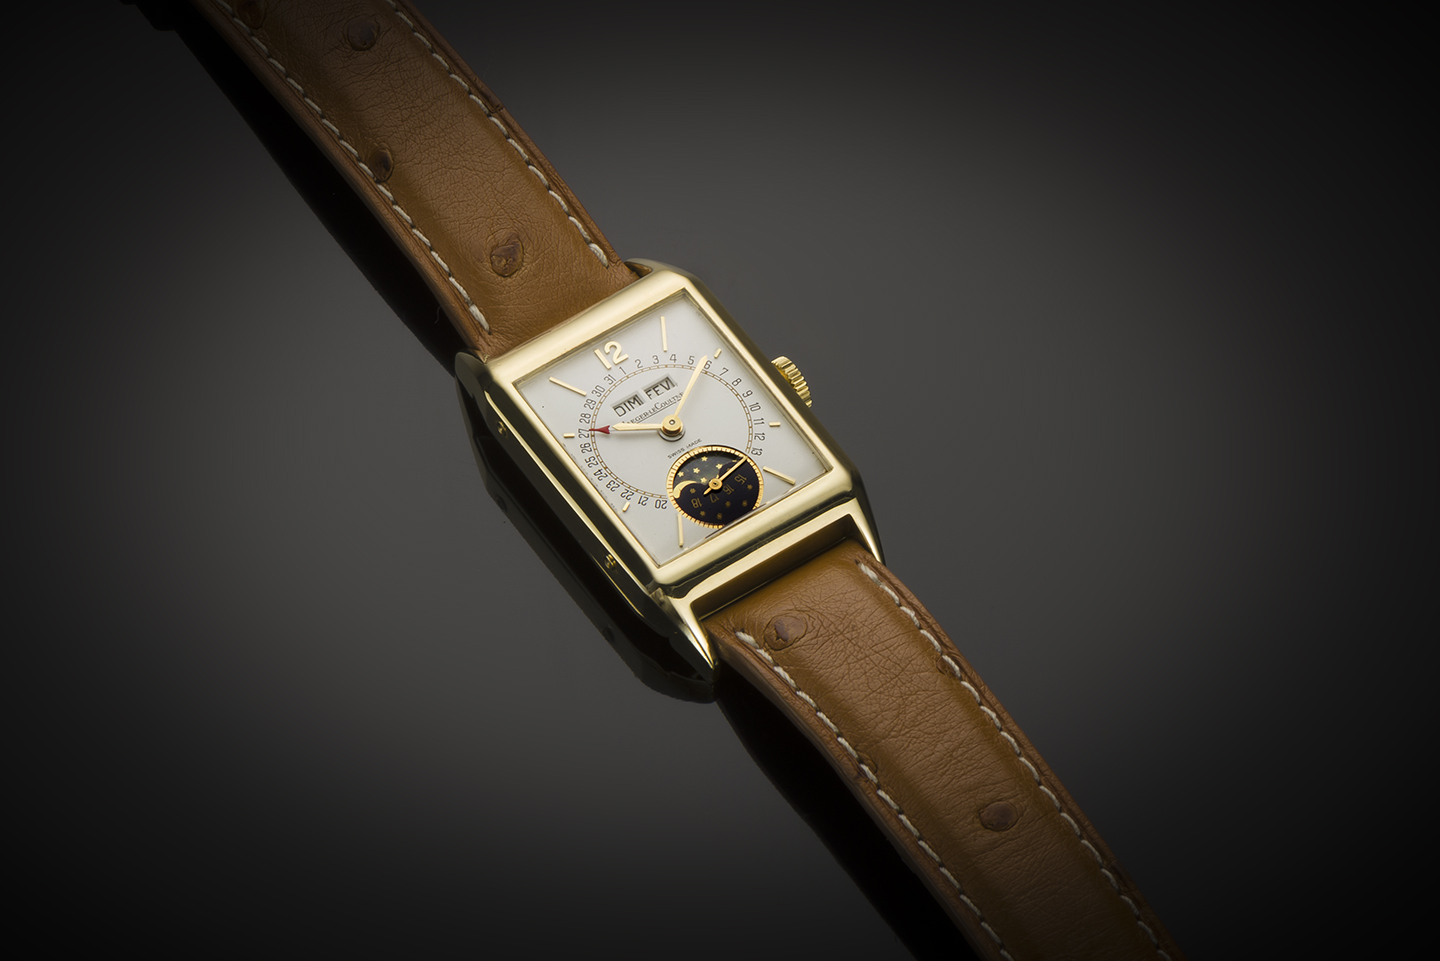 Jaeger-LeCoultre complications watch-1